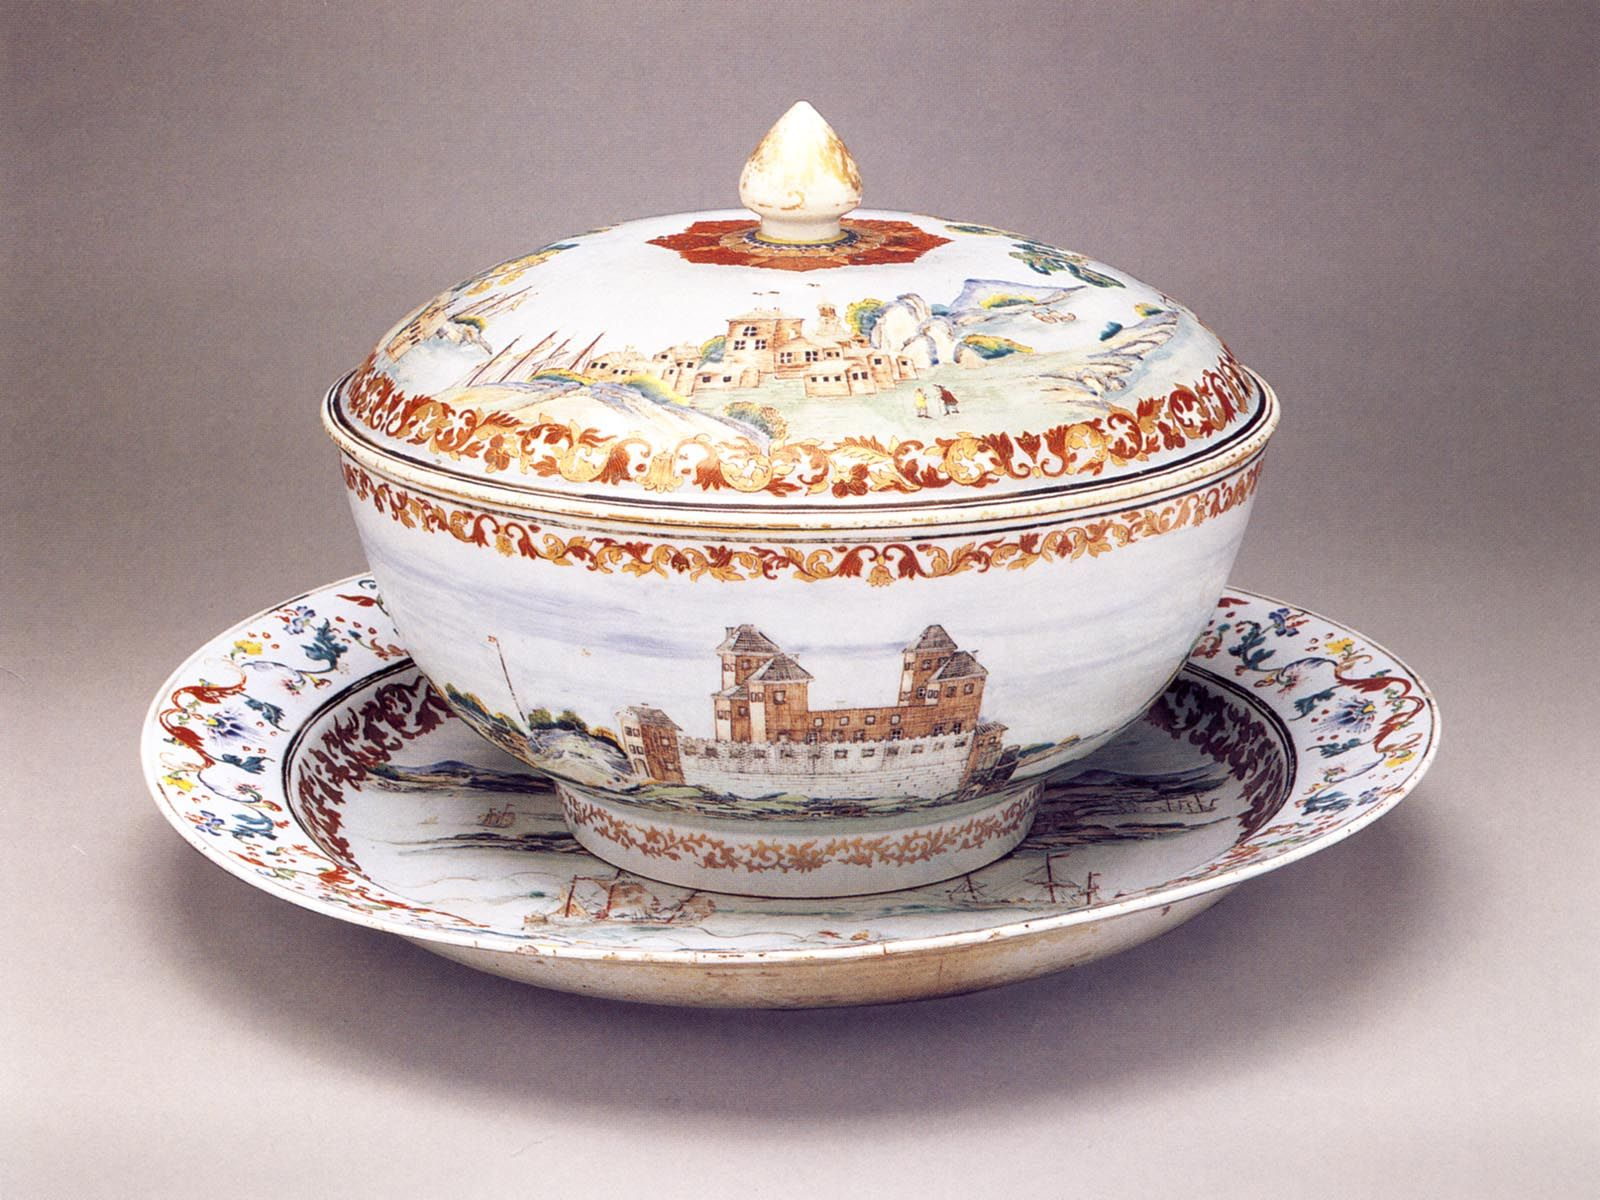 China Export Ware Punch Bowl For The Swedish Market Ca